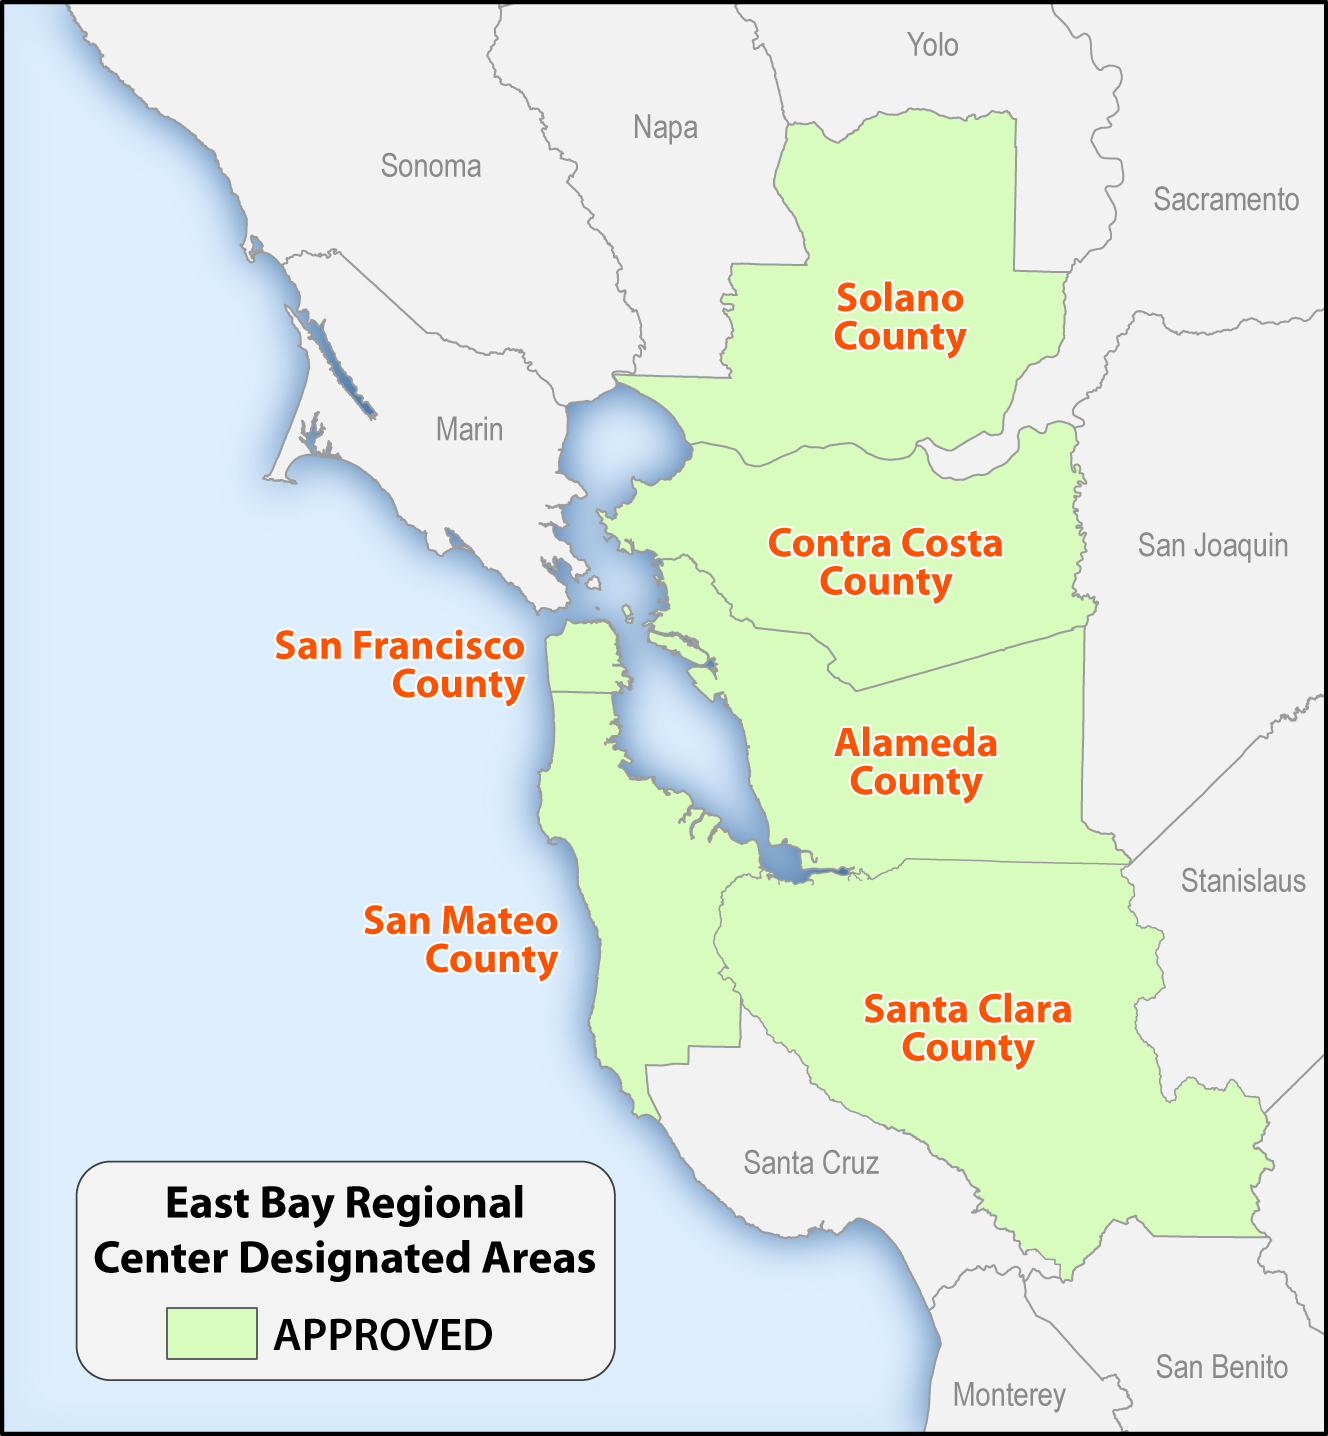 County Map Of San Francisco Bay Area And Travel Information - San Francisco Bay Area Map California